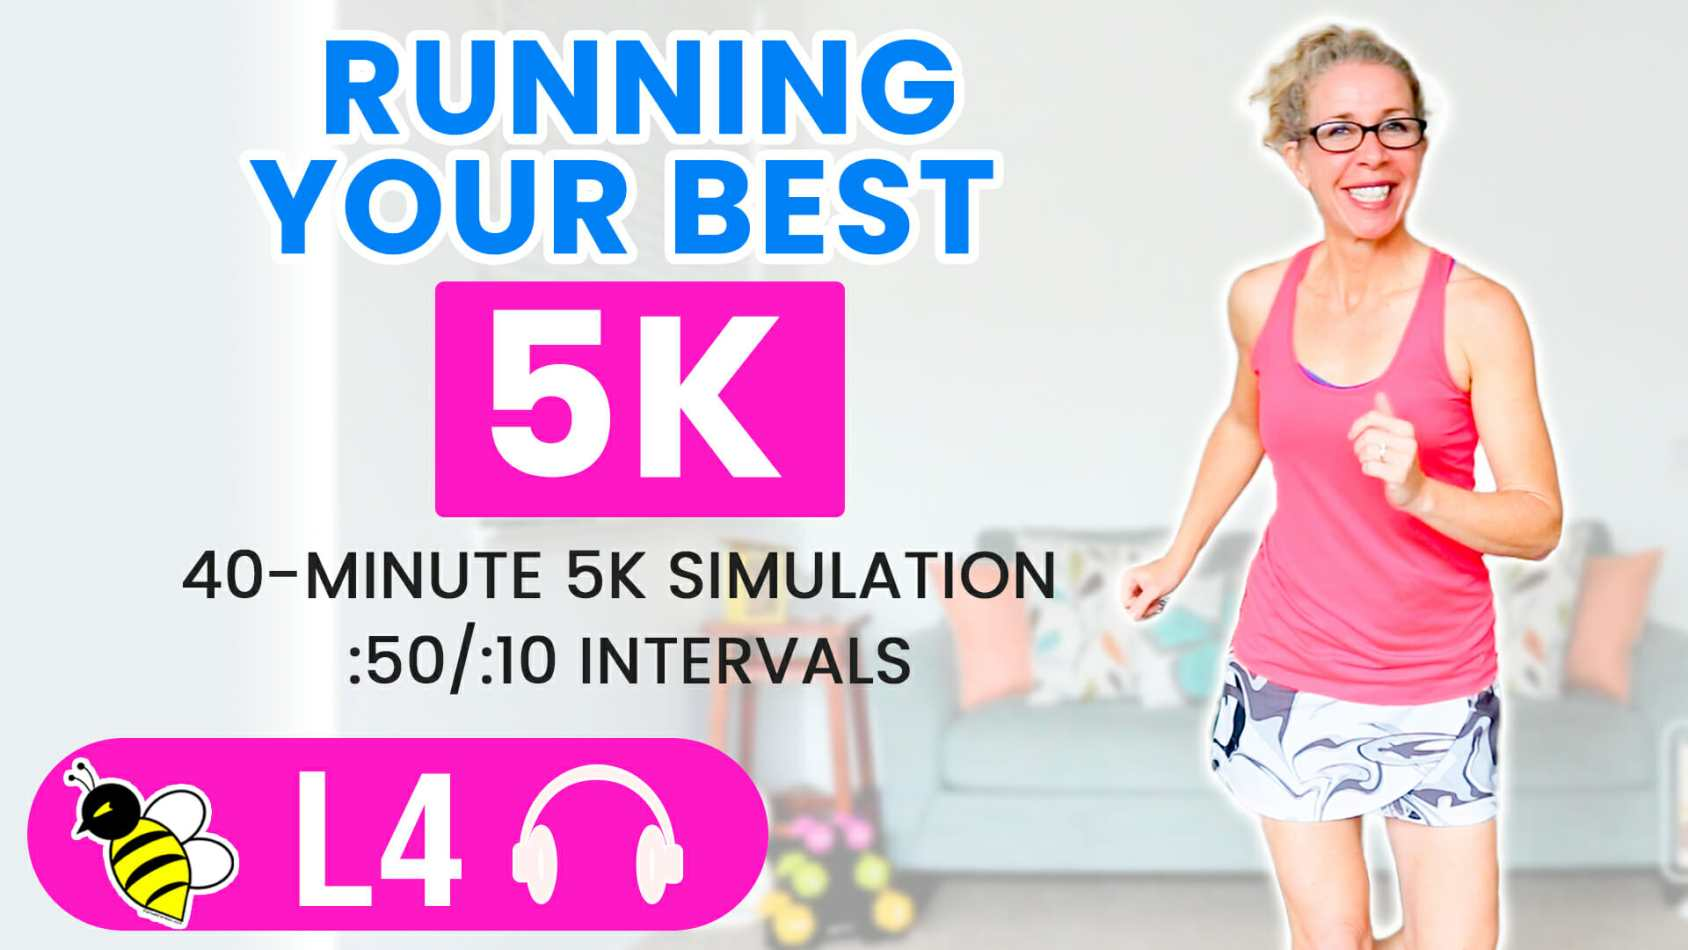 Running Your BEST 5k 40 minute RUNNING workout